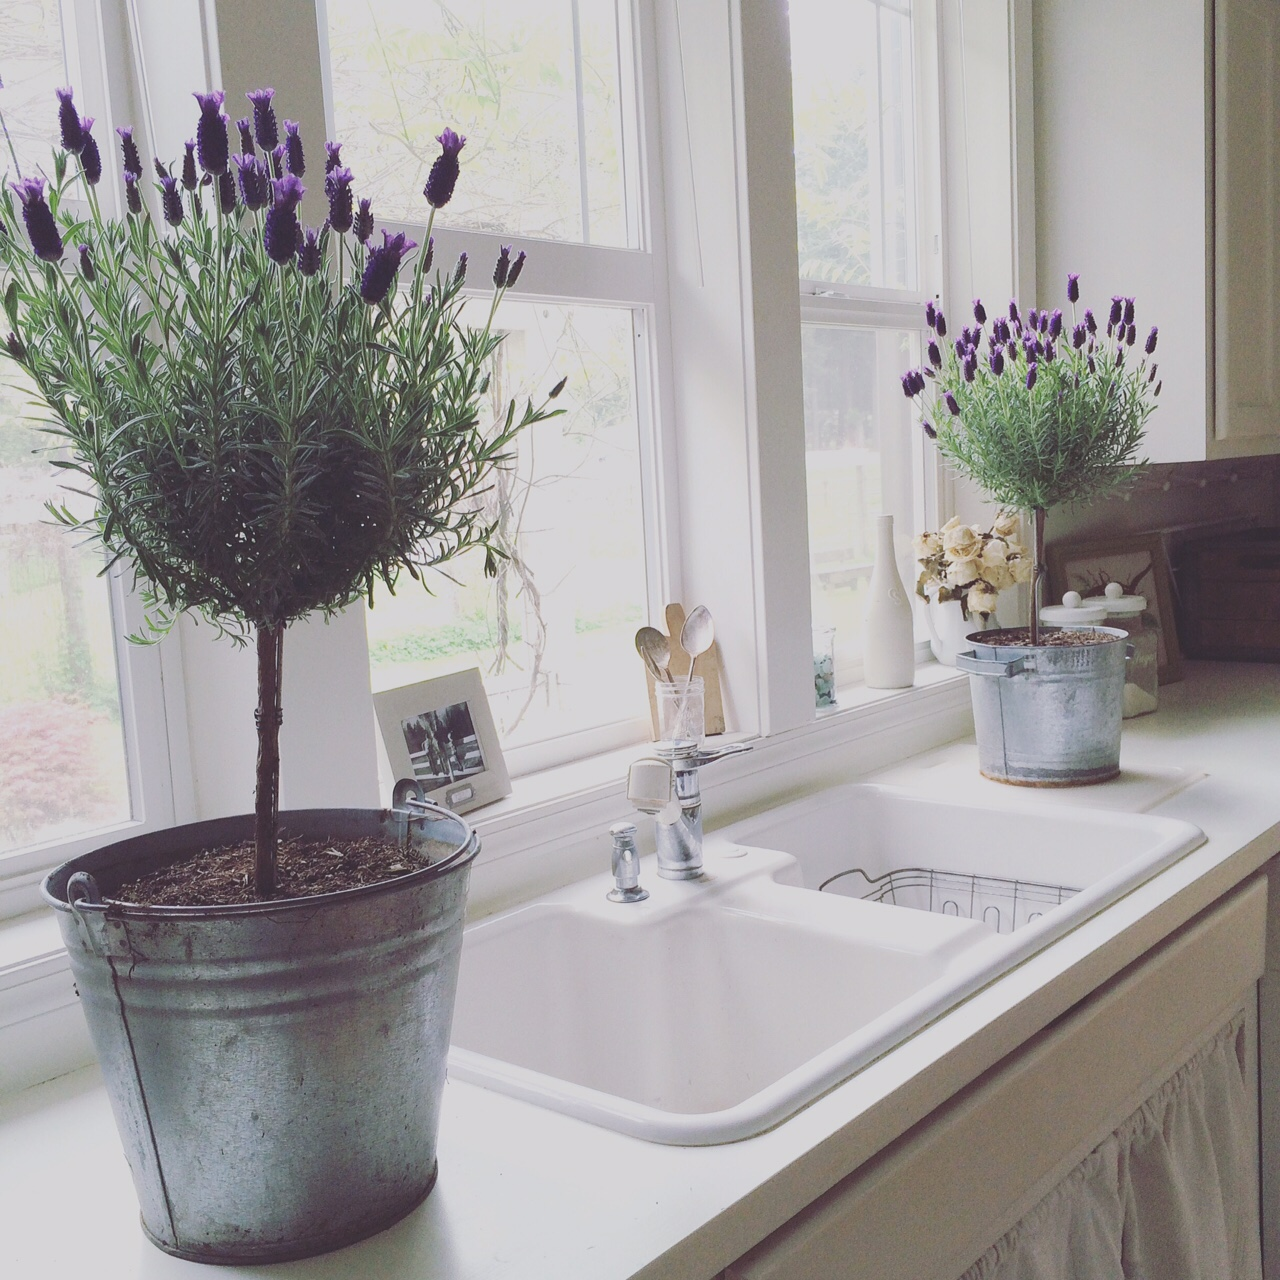 I love the way flowers and plants